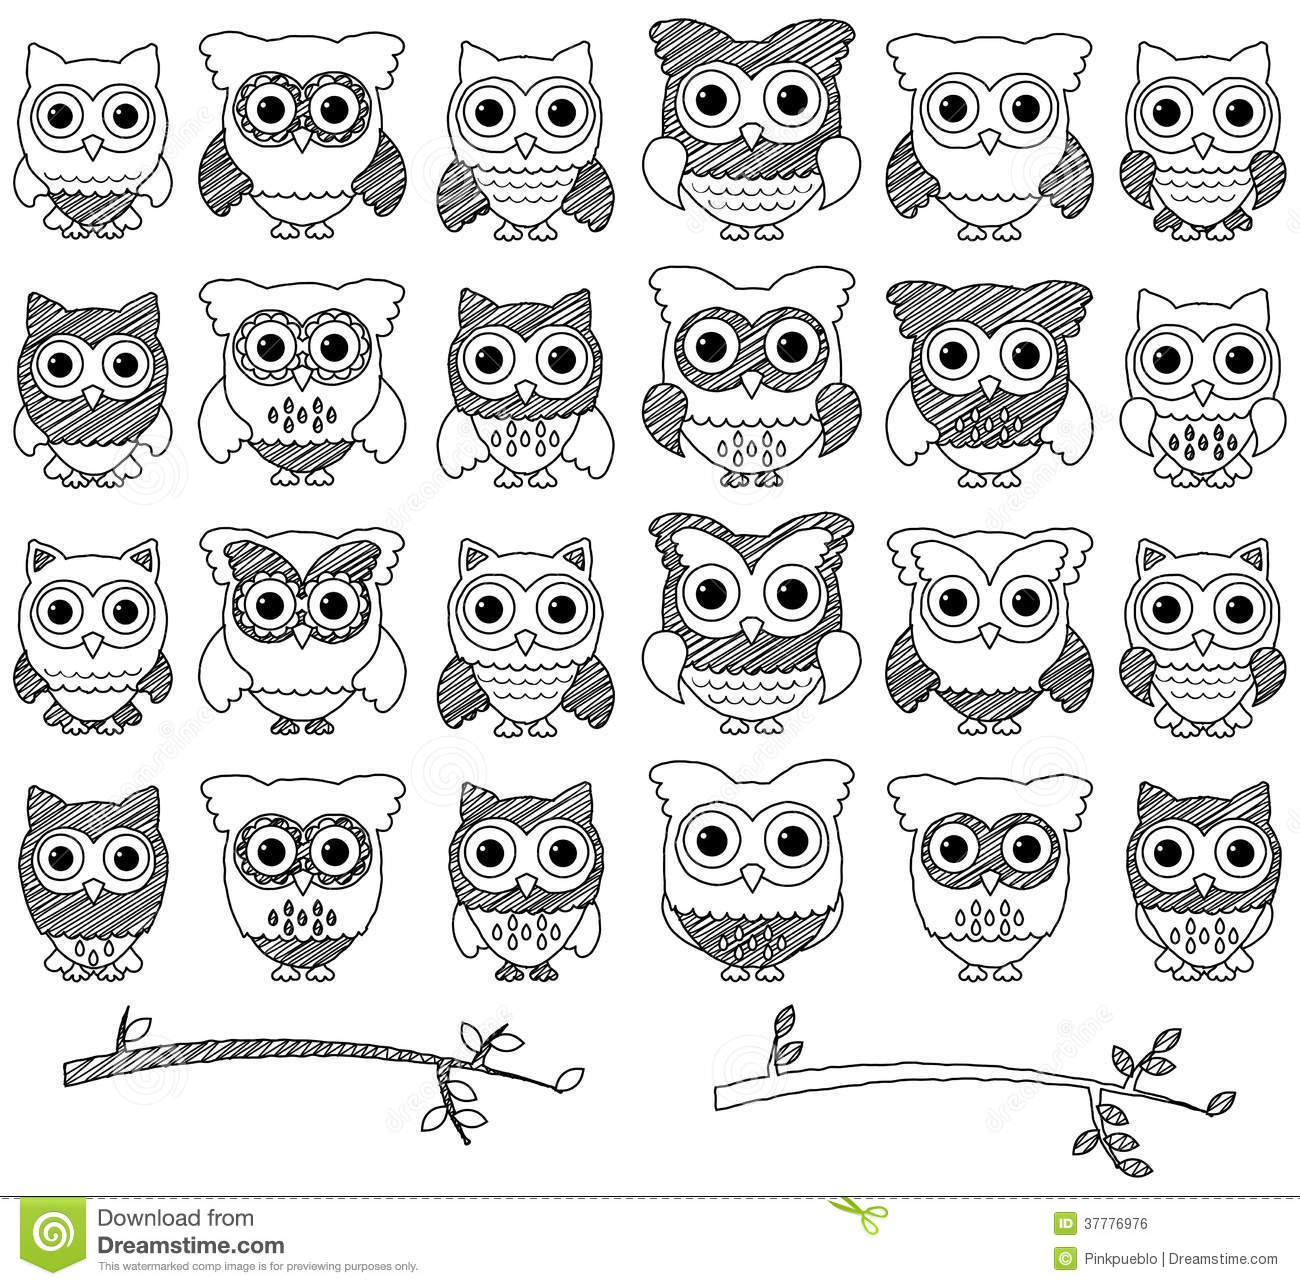 Doodle Style Vector Set Of Cute Owls Royalty Free Stock ...